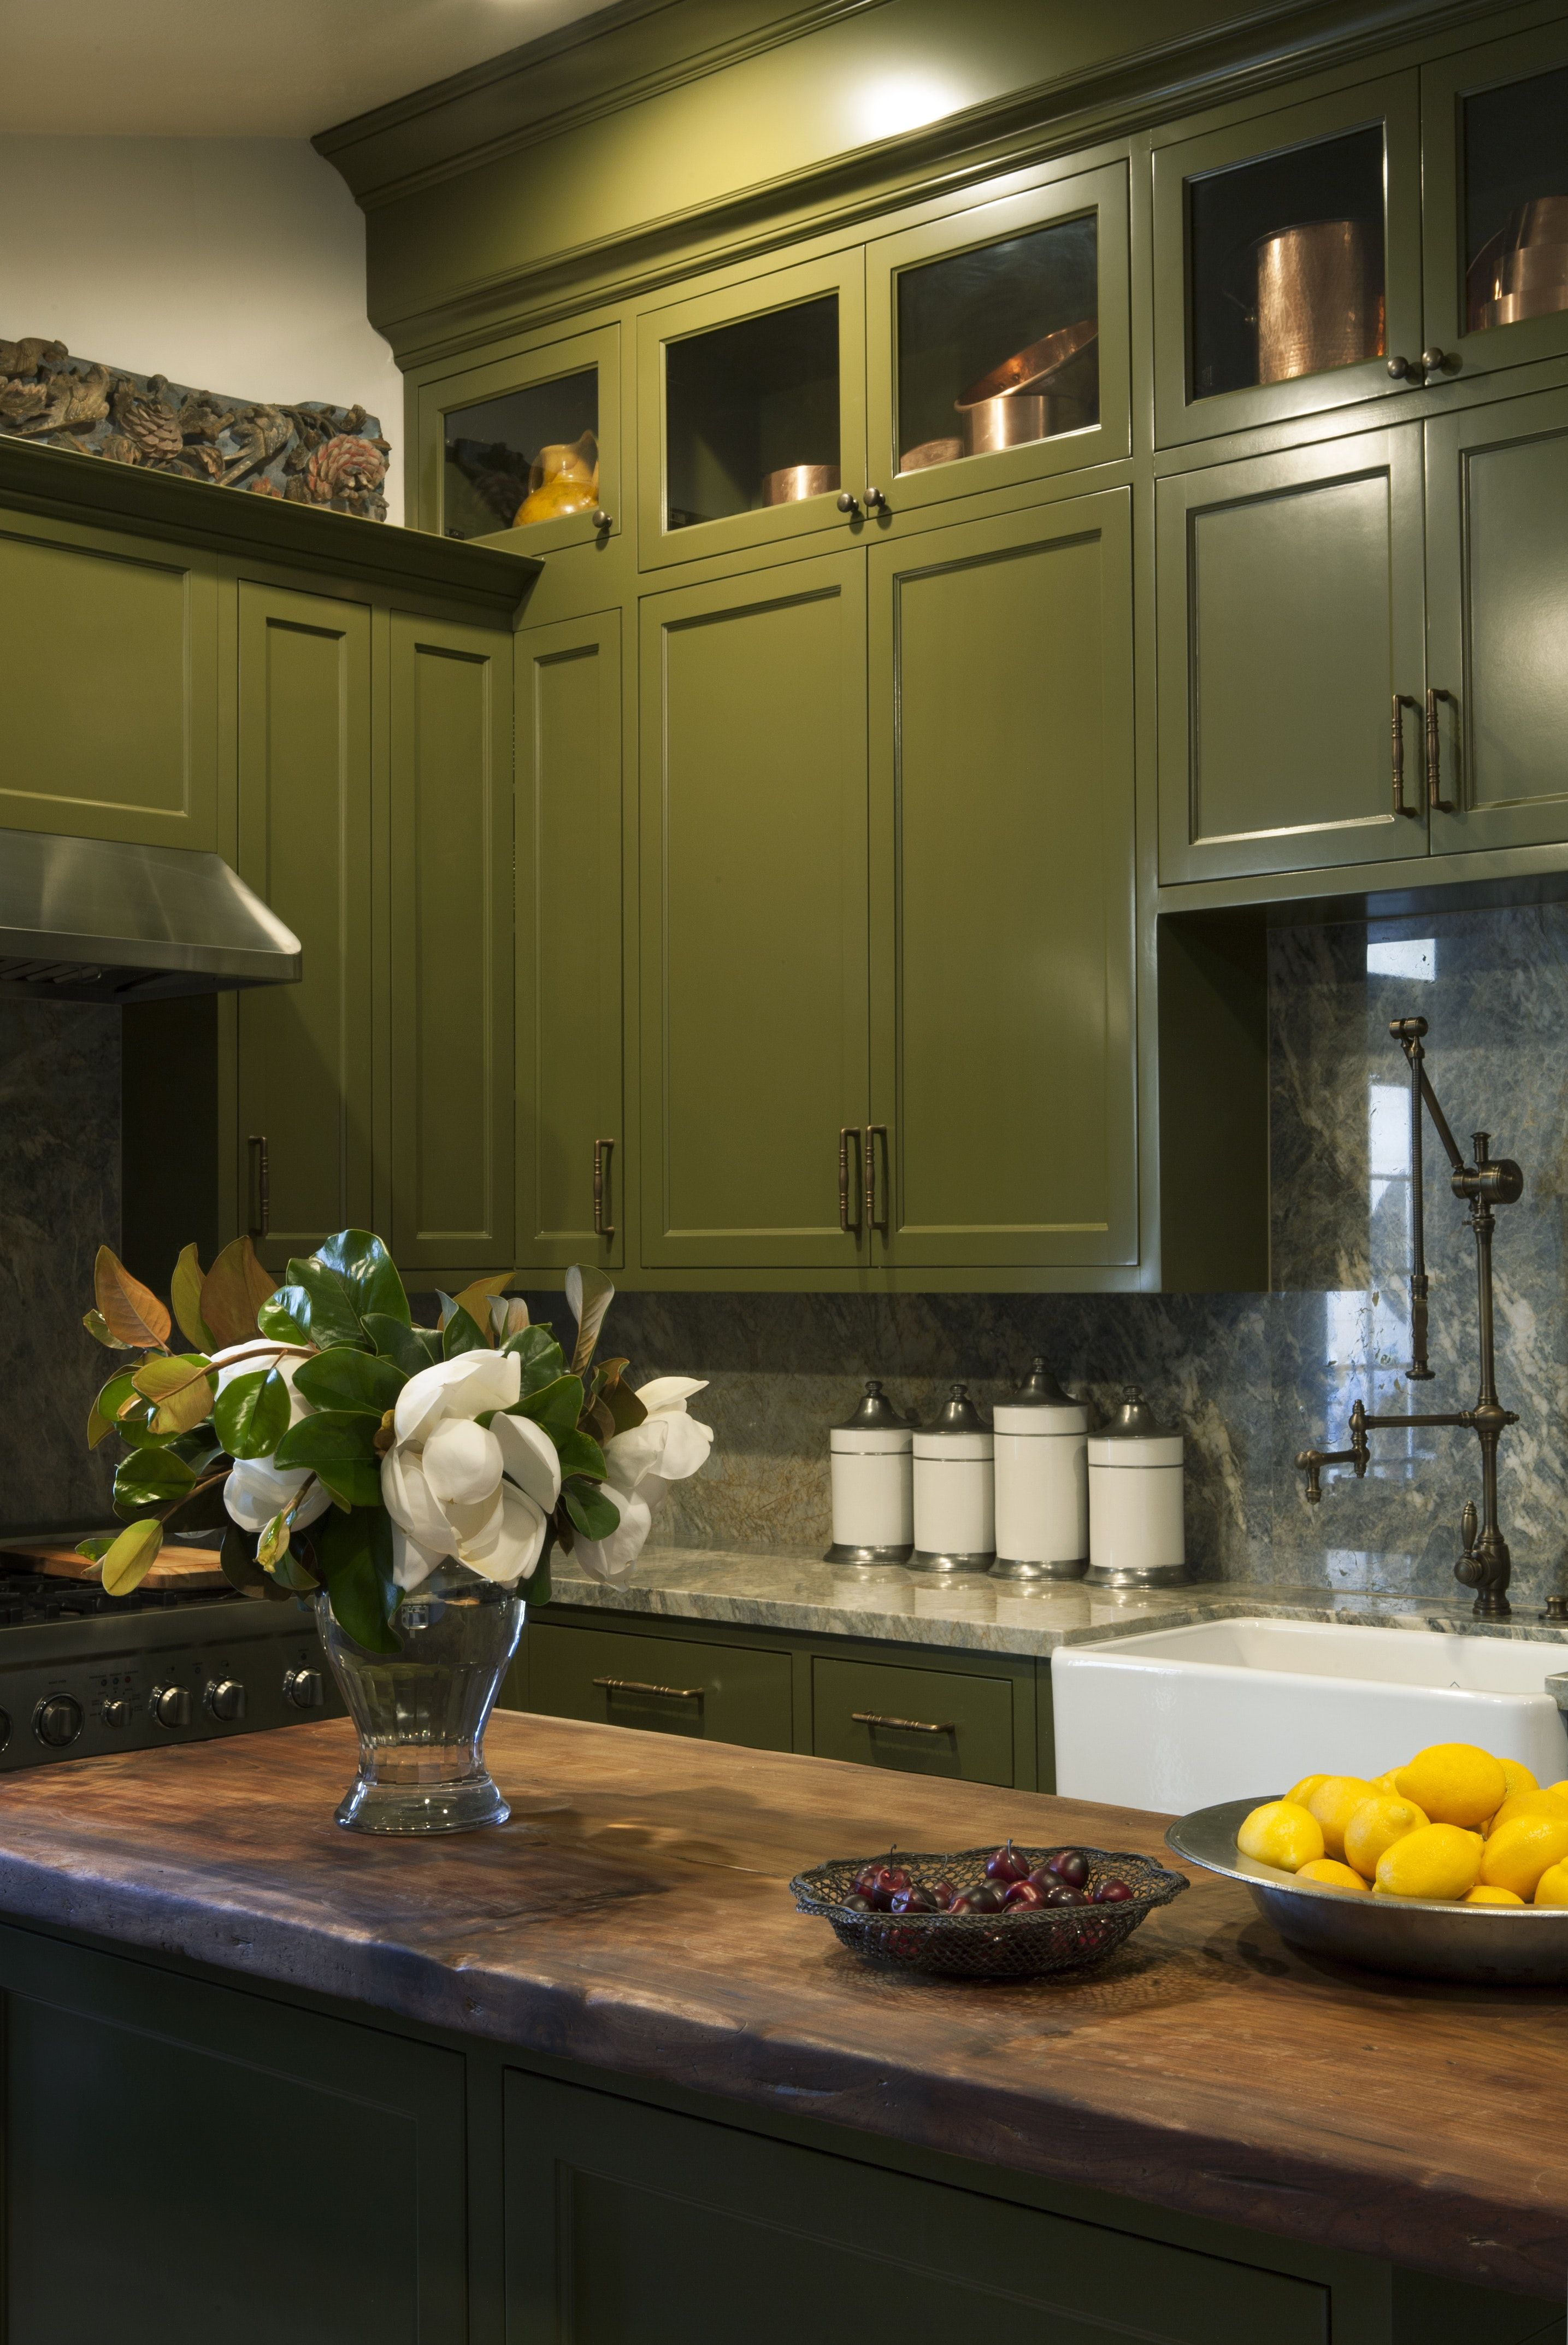 Windowless Kitchen With Olive Green Cabinetry